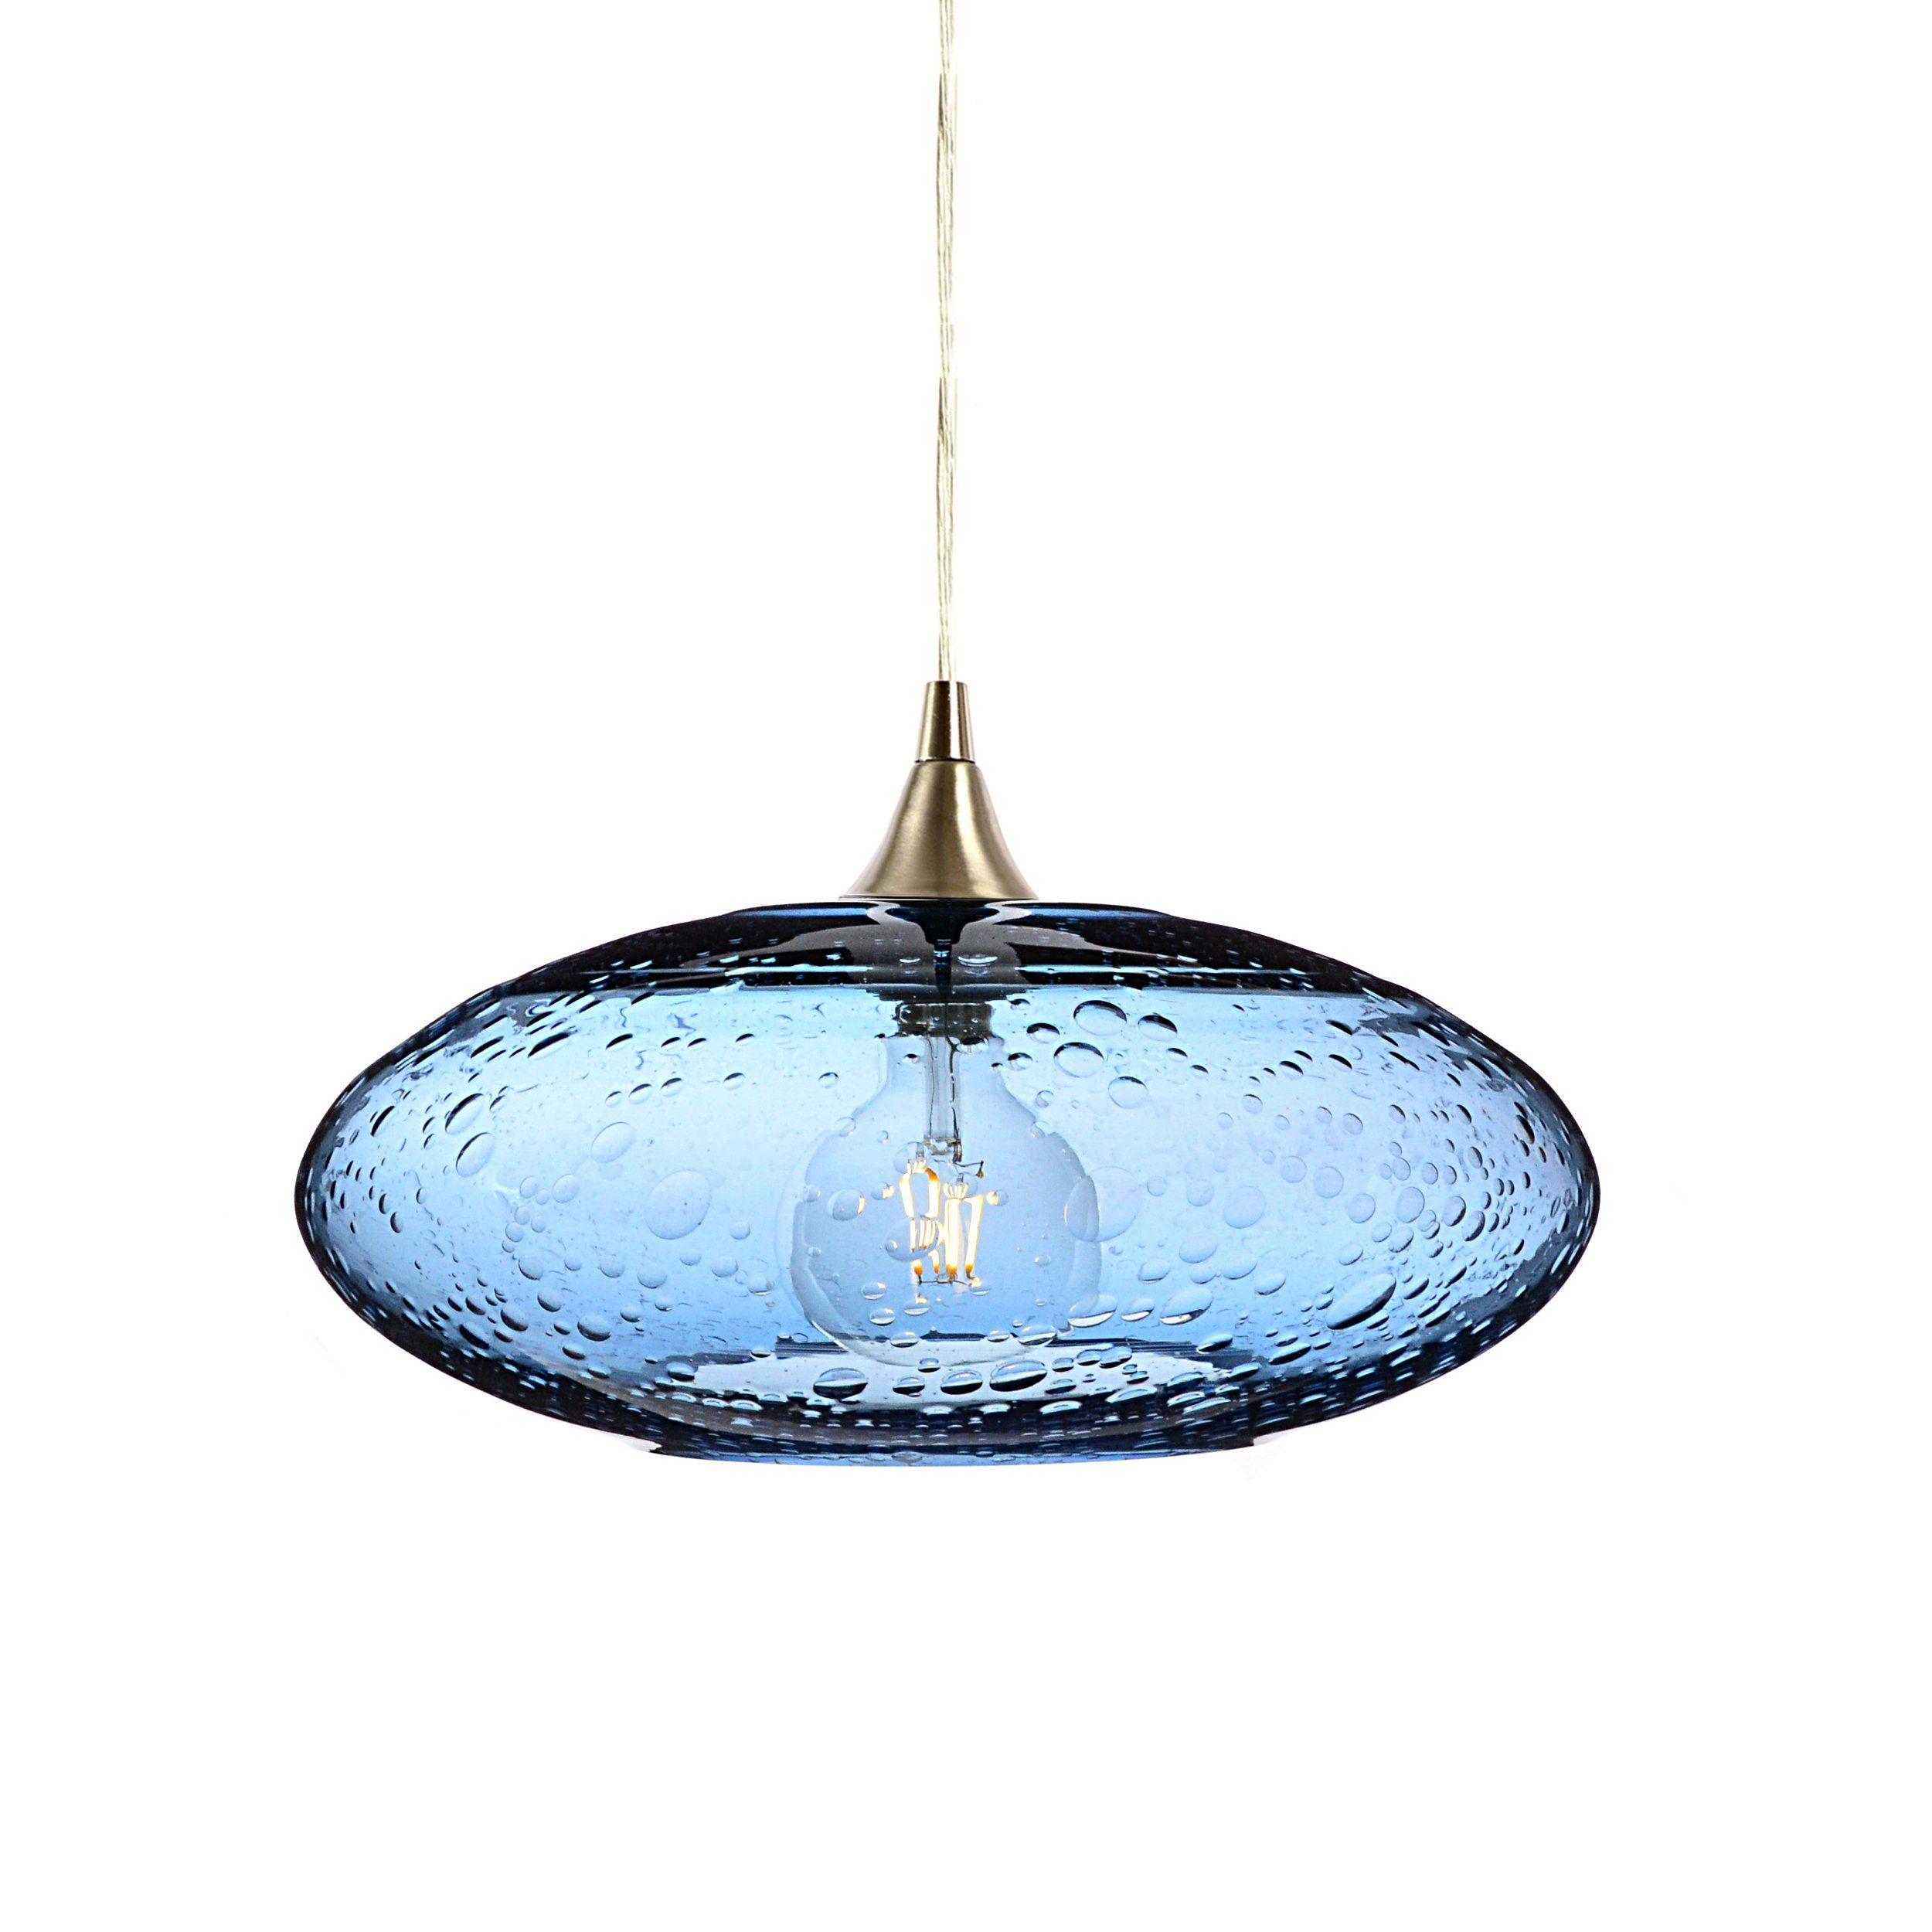 willowlamp h general pod single from lamp en pendant spiral product by silver lighting